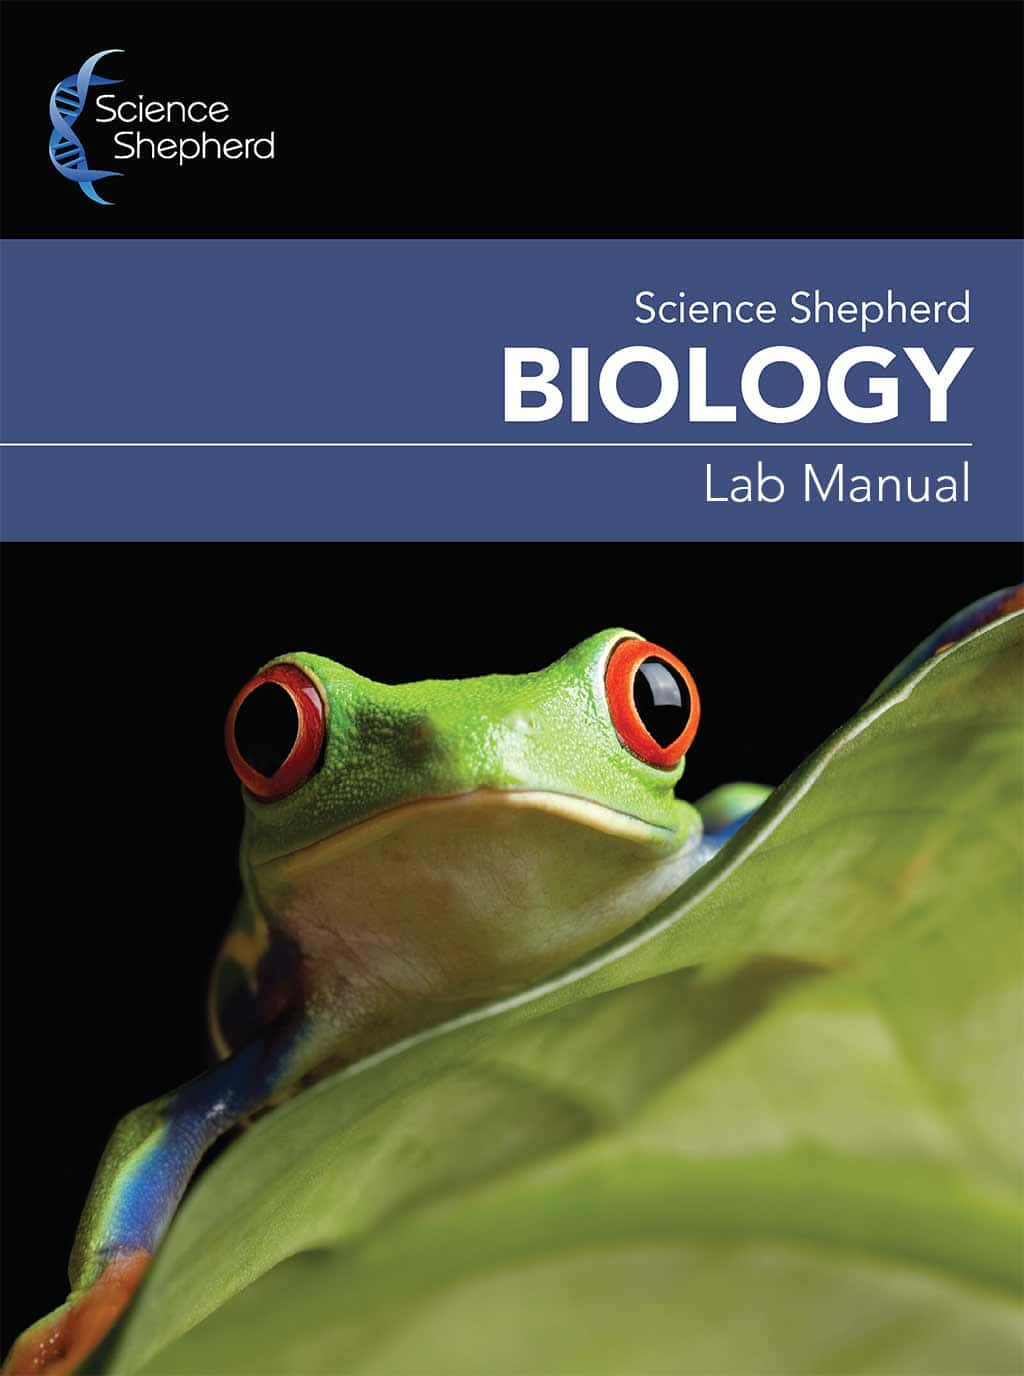 Science Shepherd Homeschool Christian Biology Curriculum Lab Manual cover